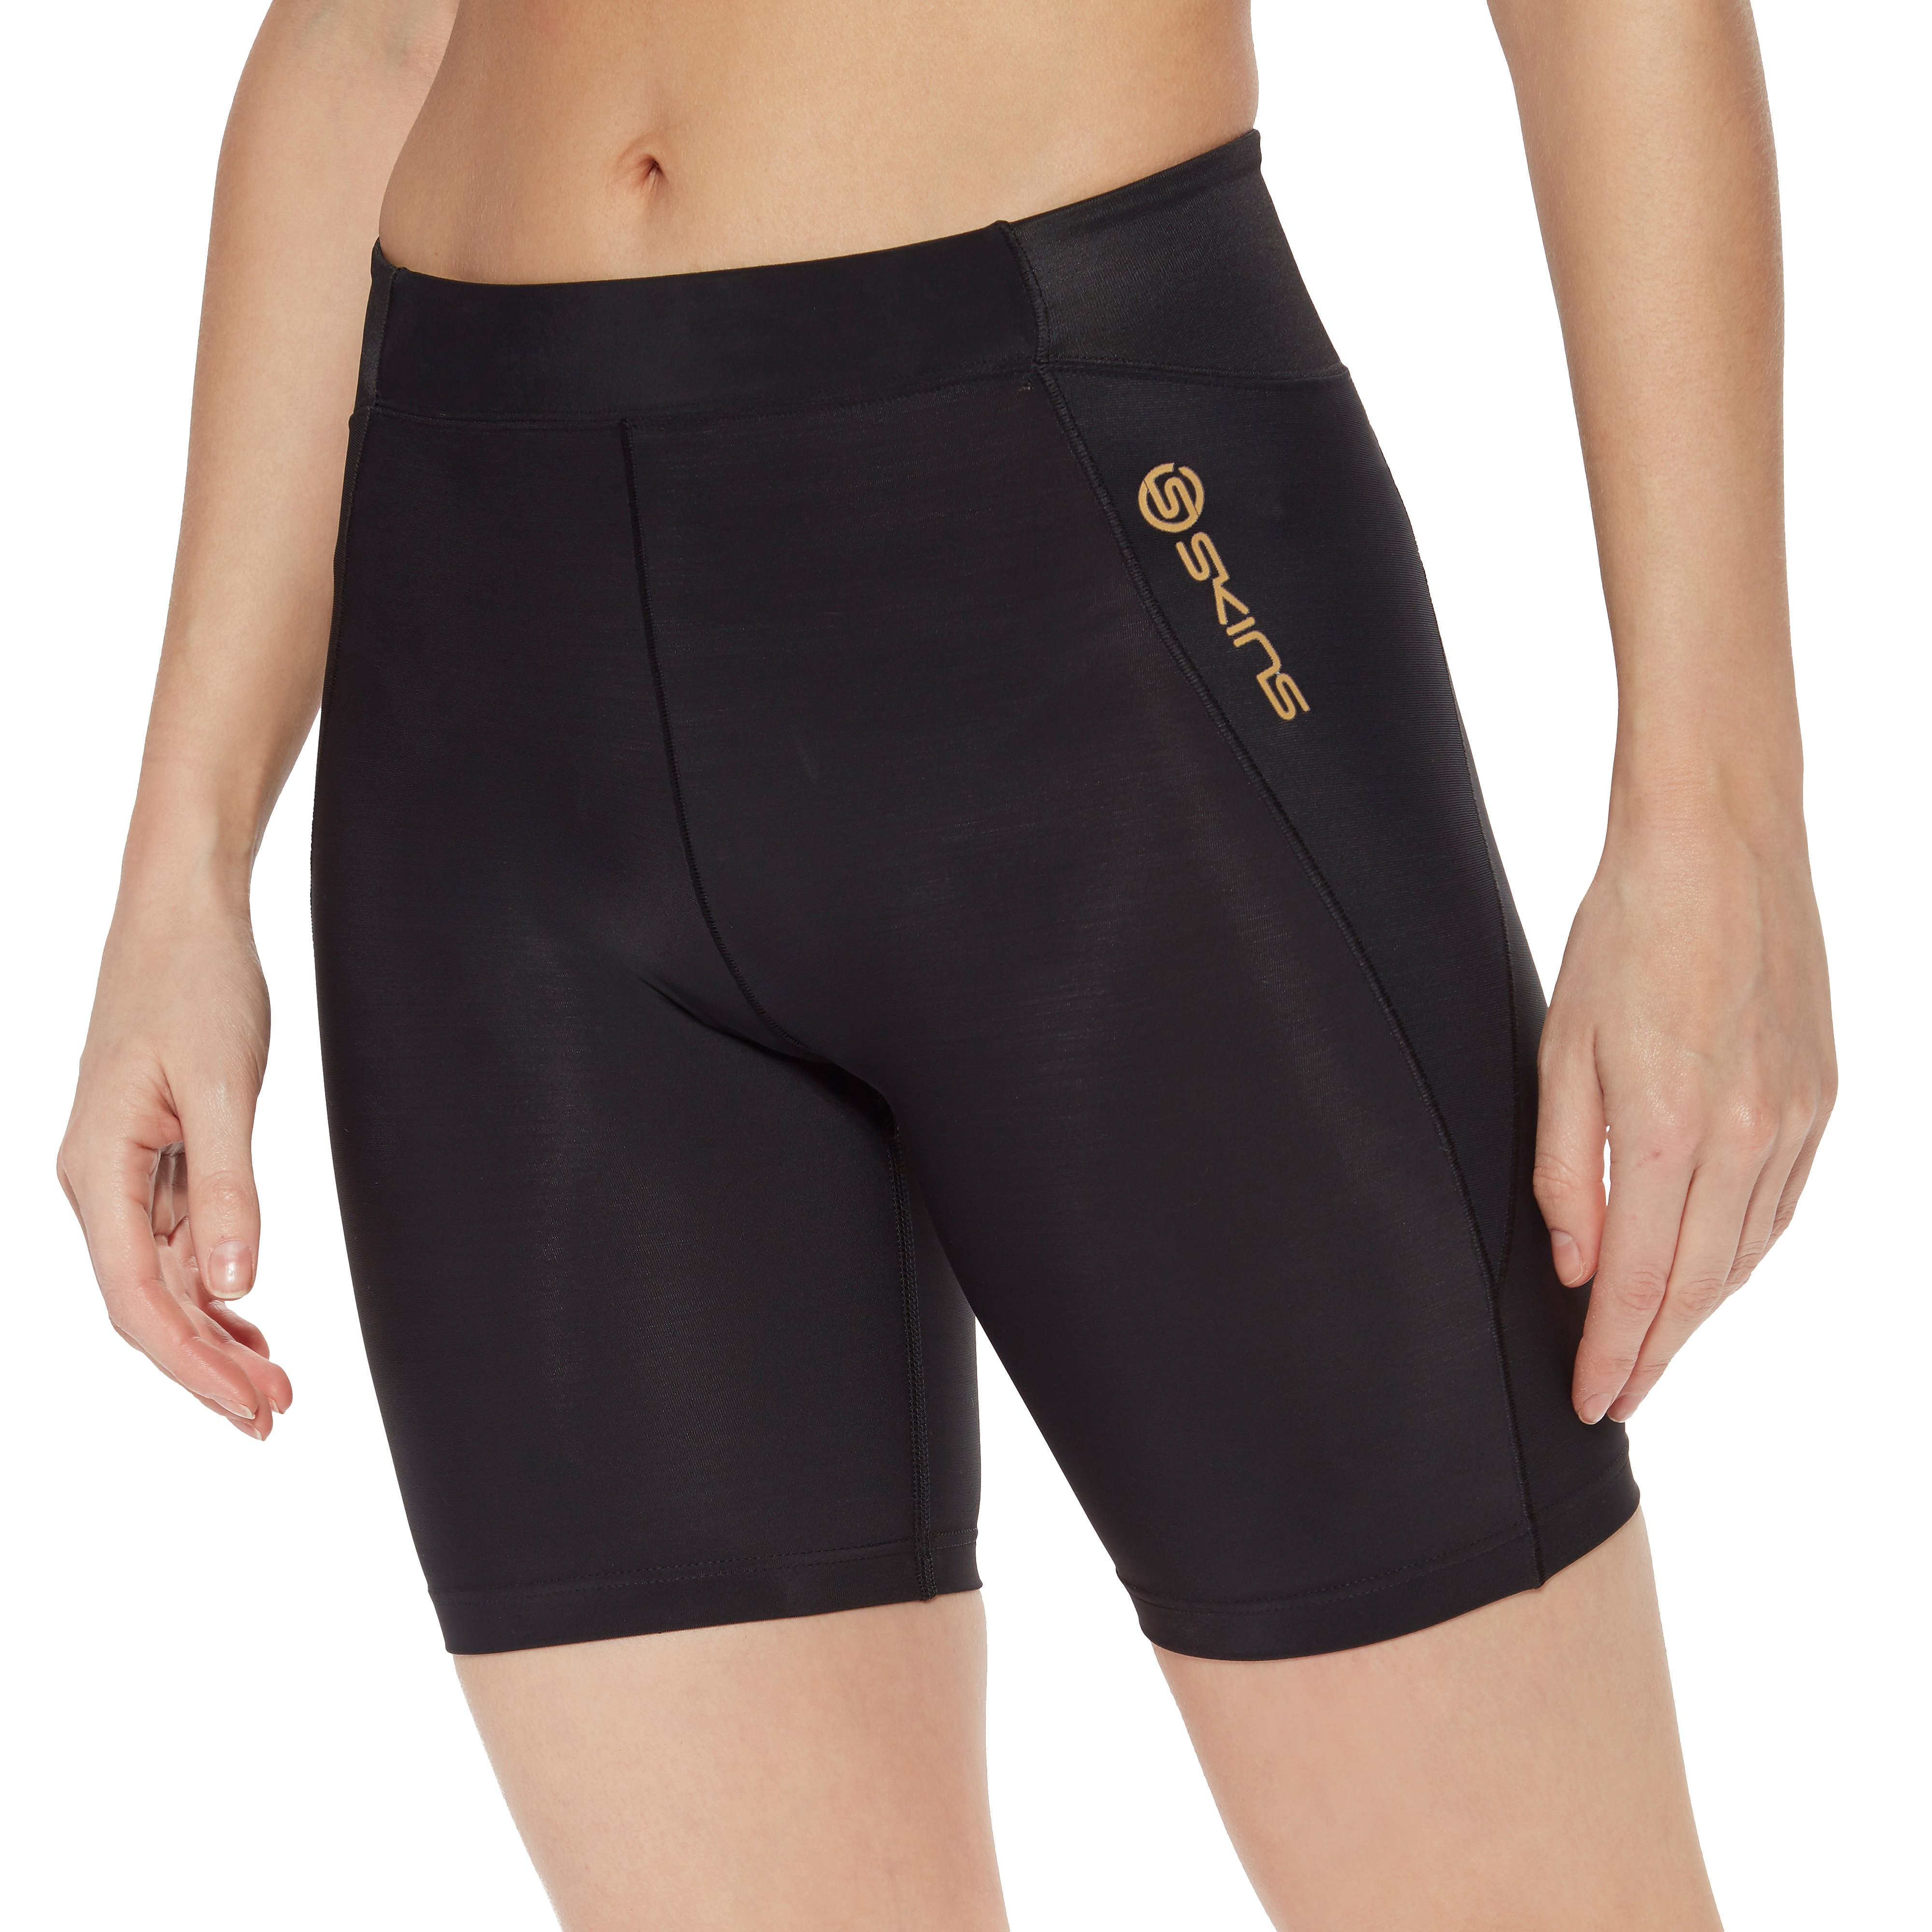 Skins A400 Compression Women's Running Shorts